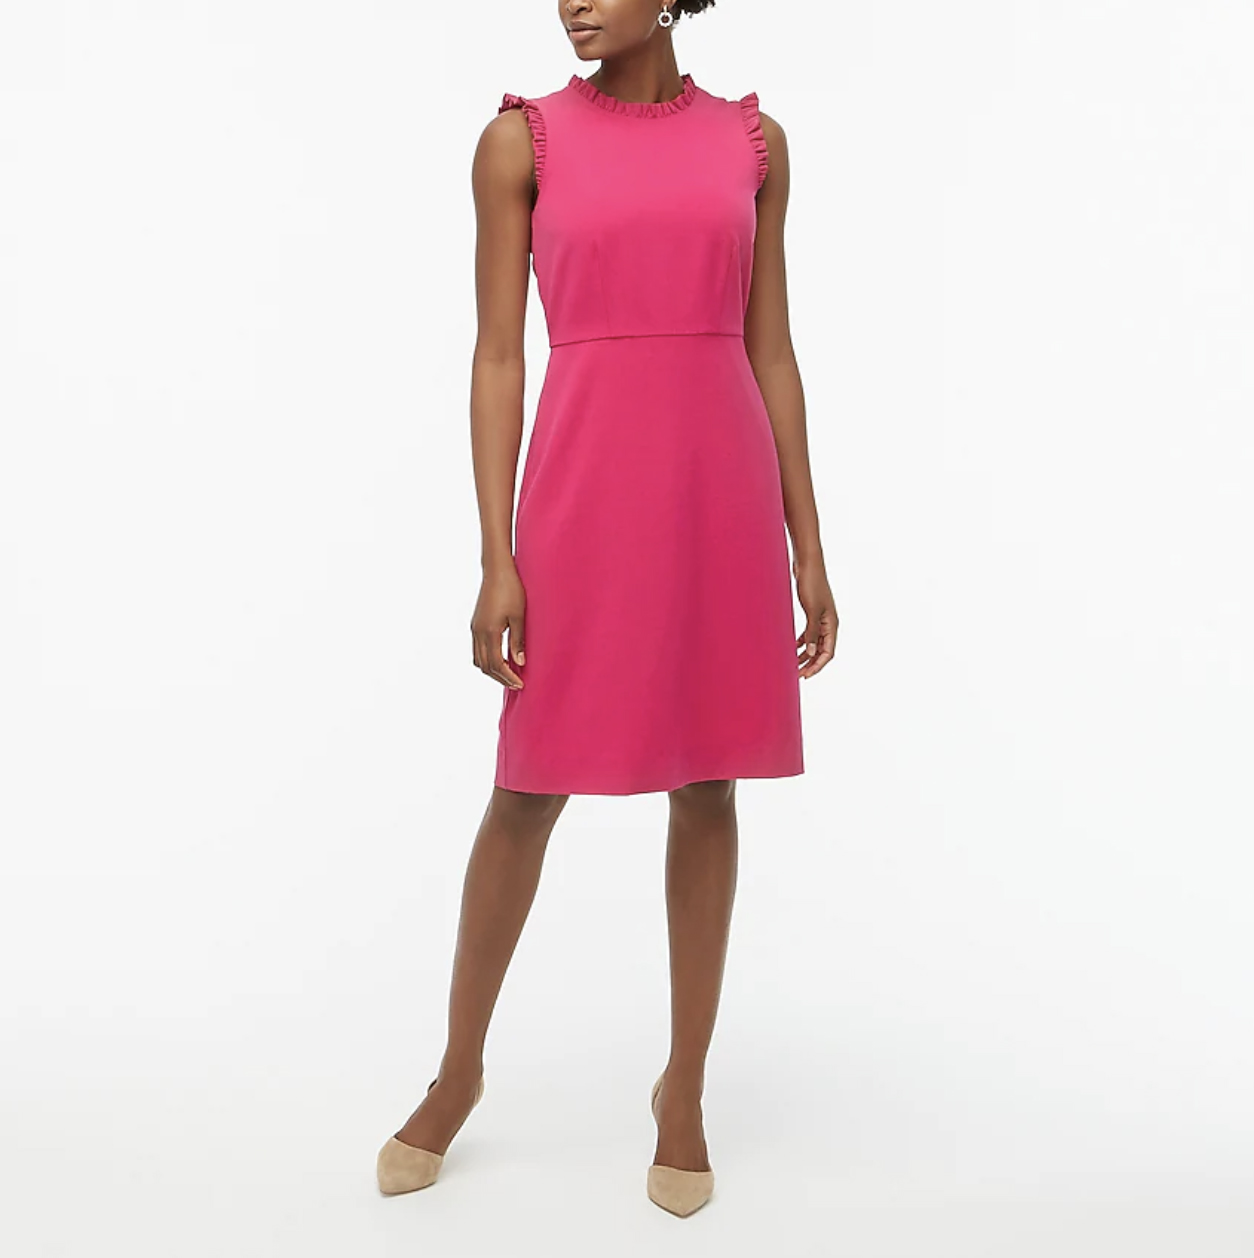 J. Crew Ruffle Neck Sheath Dress